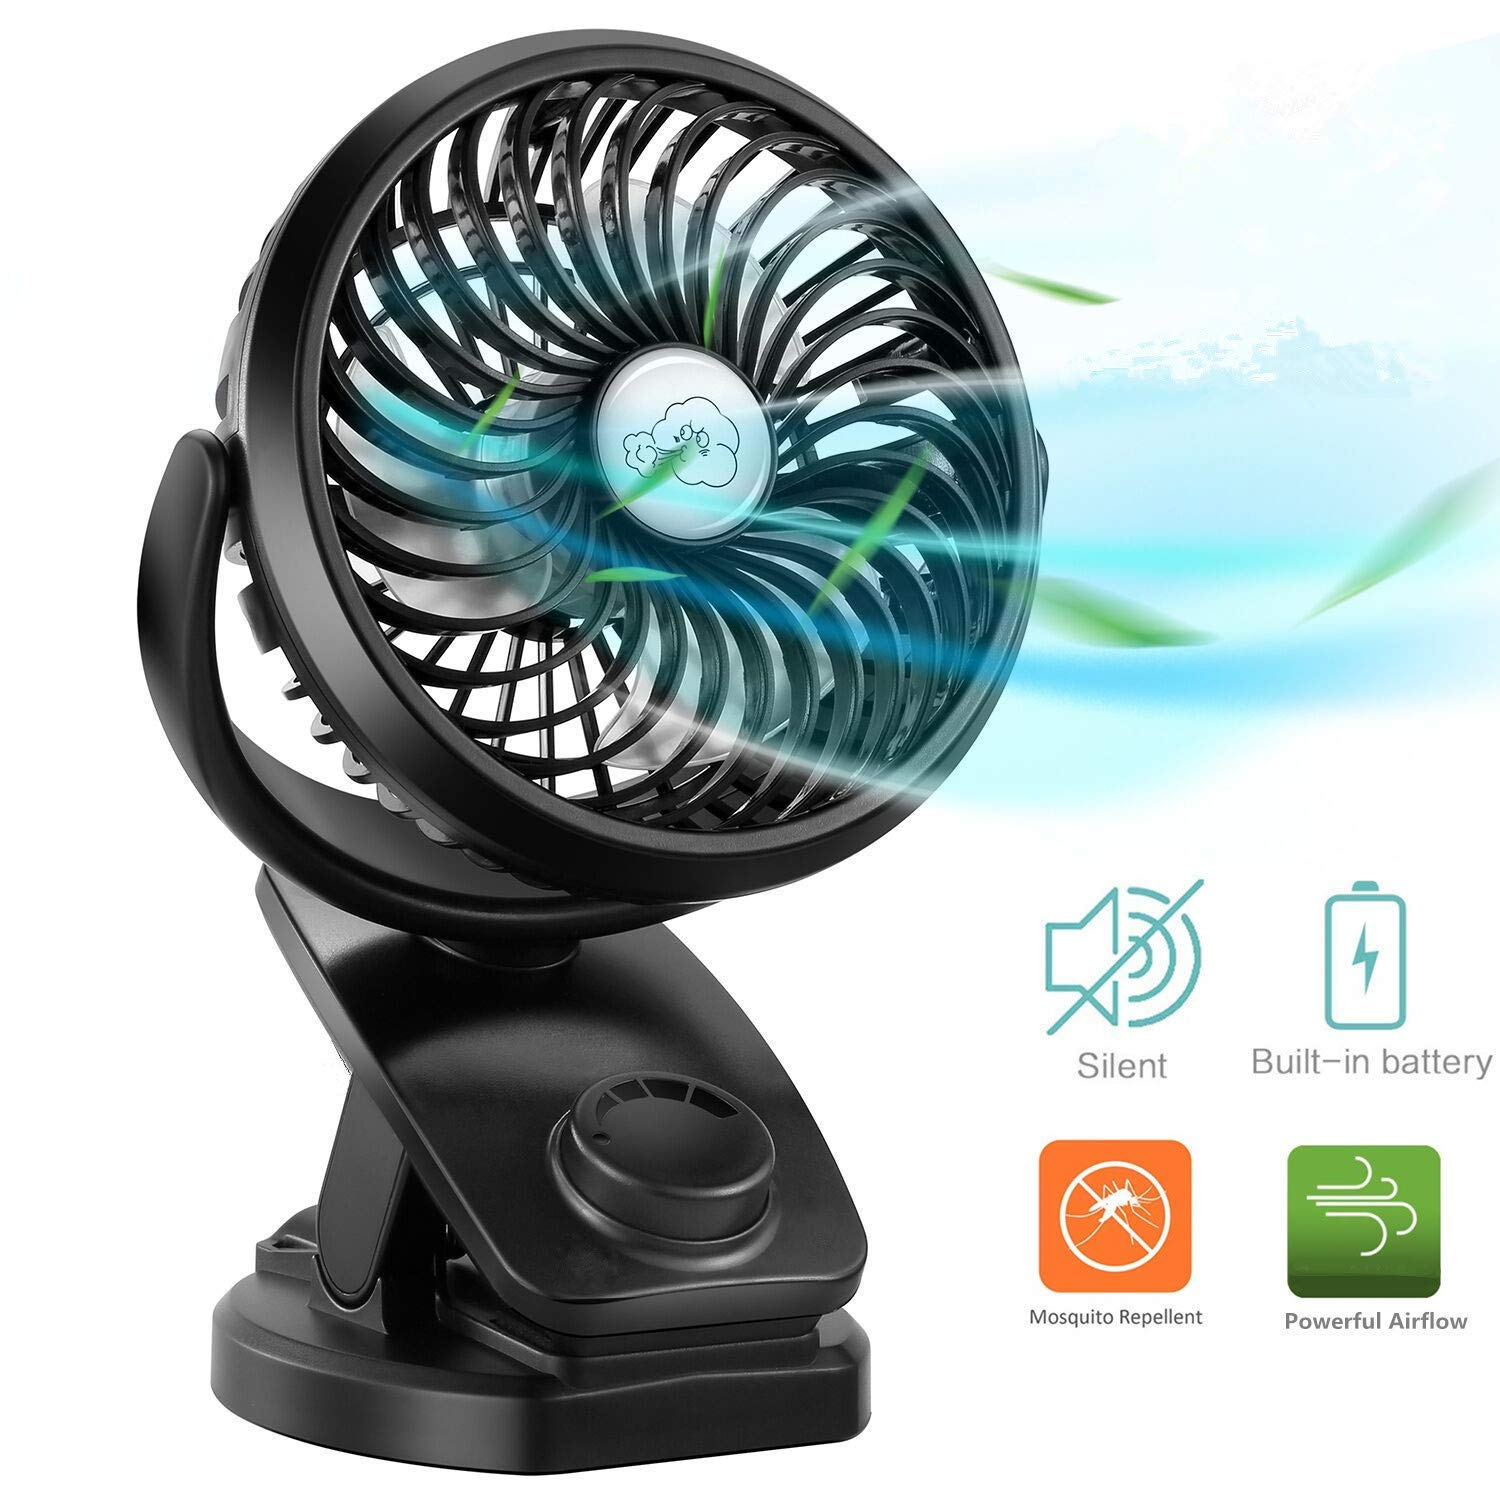 COMLIFE Portable Fan F150, USB Desk Fan with Rechargeable 4400 mAh Battery,Mini Clip on Fan with Powerbank &Aroma Diffuser Function,Stepless Speeds, Ideal for Stroller, Camping, Office, Outdoor,Travel by COMLIFE